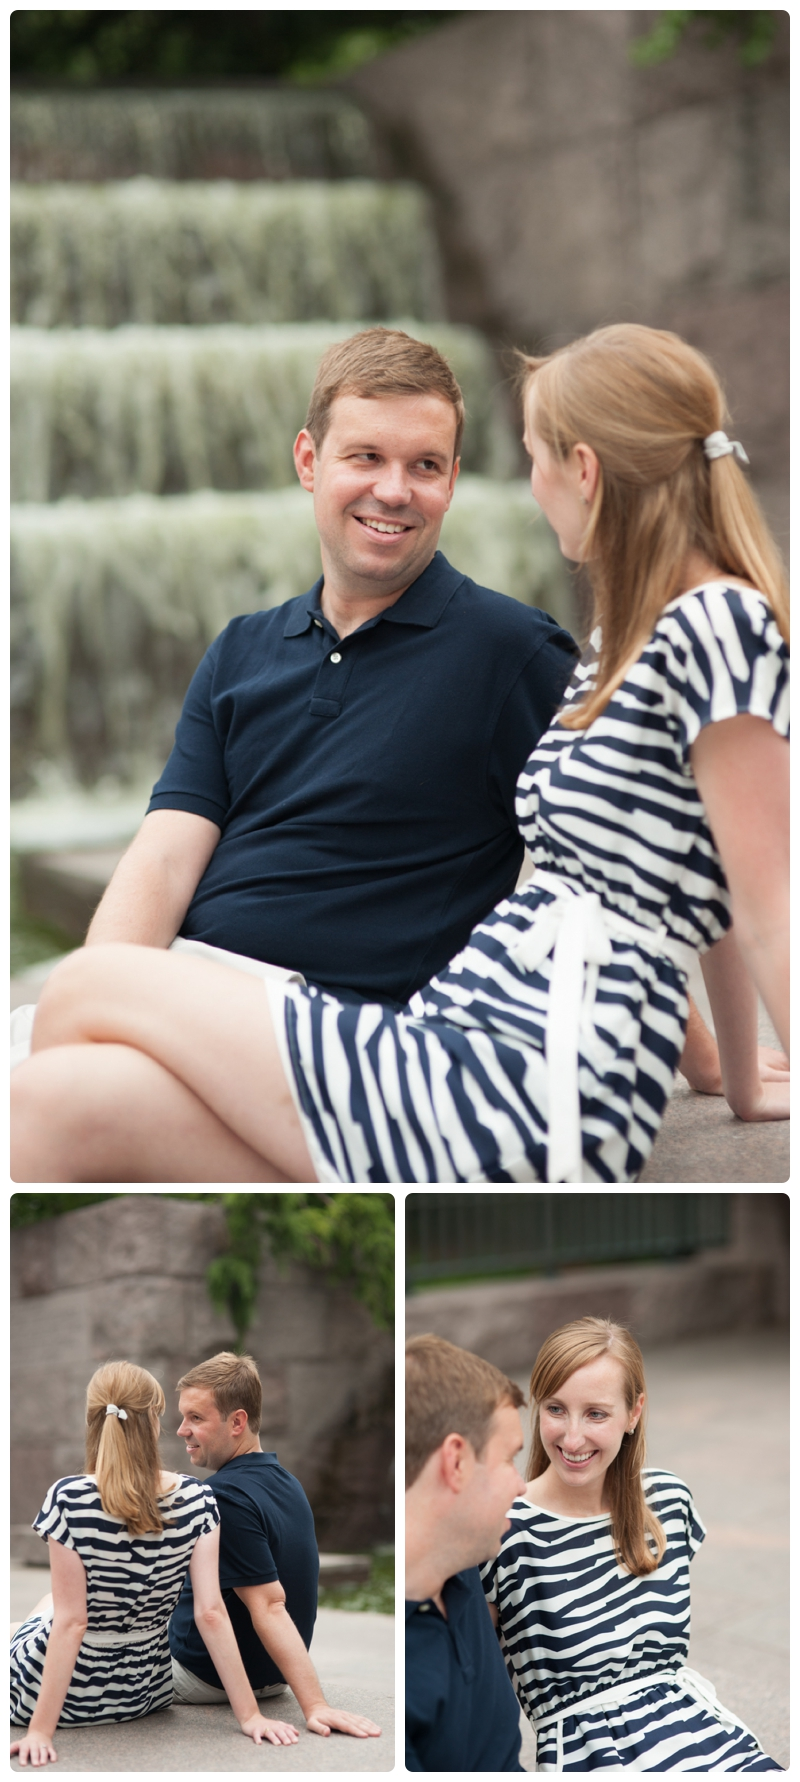 Engagement Session in Arlington Virginia by Rachael Foster Photography_0096.jpg